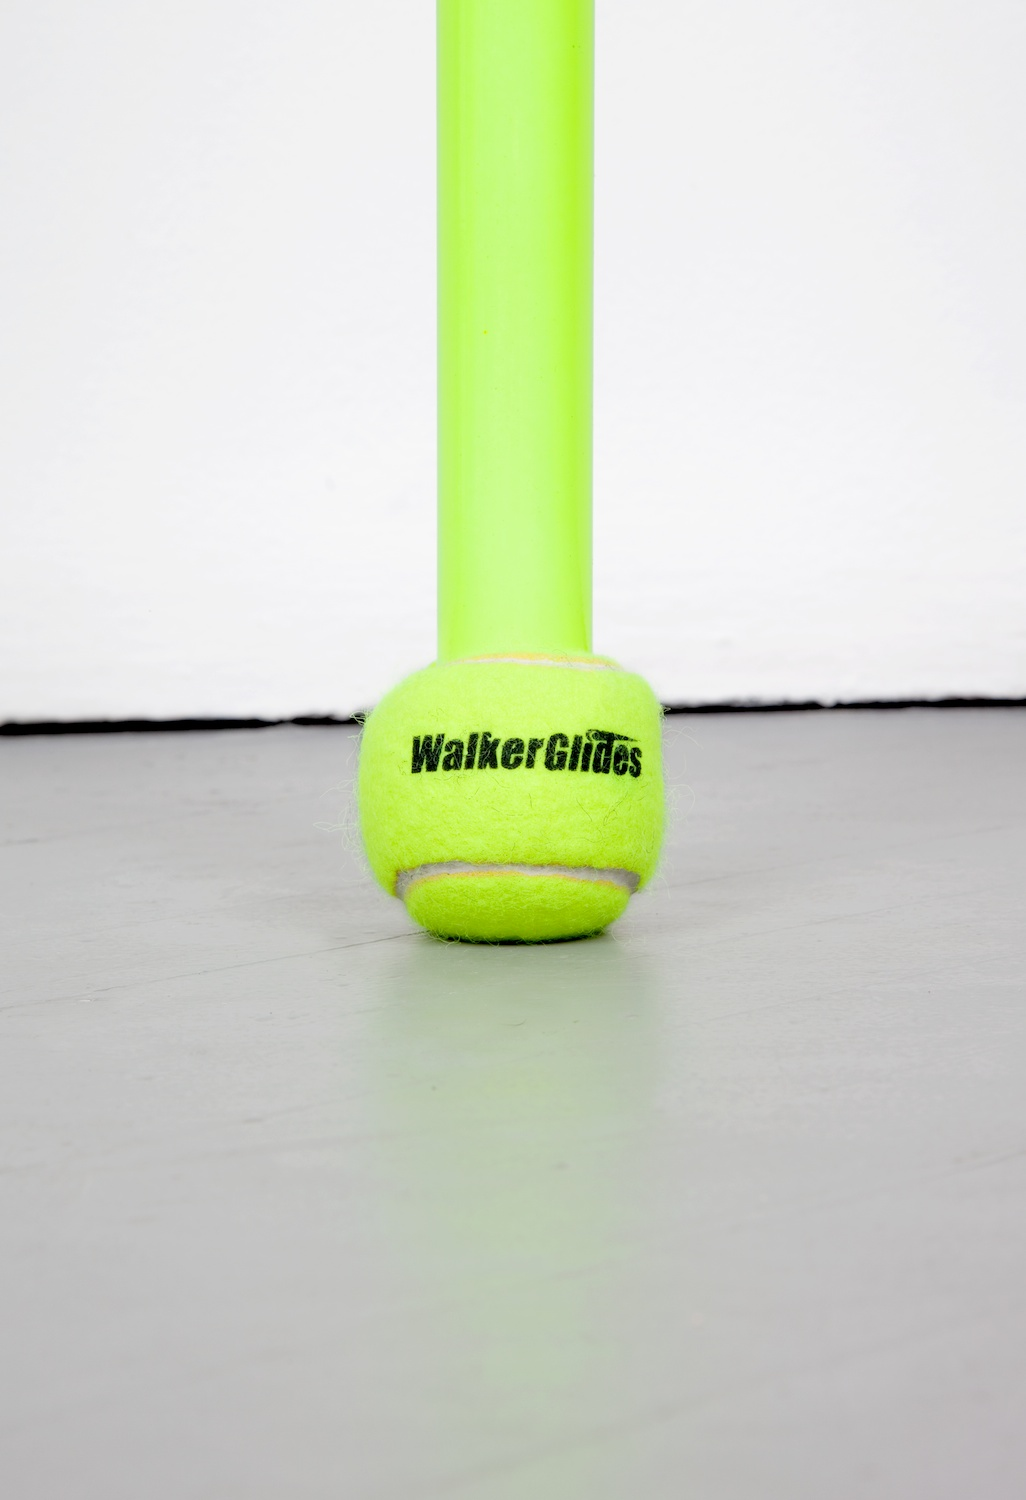 Chadwick Rantanen  Telescopic Pole (BallGlides / Fluorescent Yellow / 02)  (Detail) 2012 Powdercoated aluminum, plastic, walkerballs 282h x 1 ½w in CR030